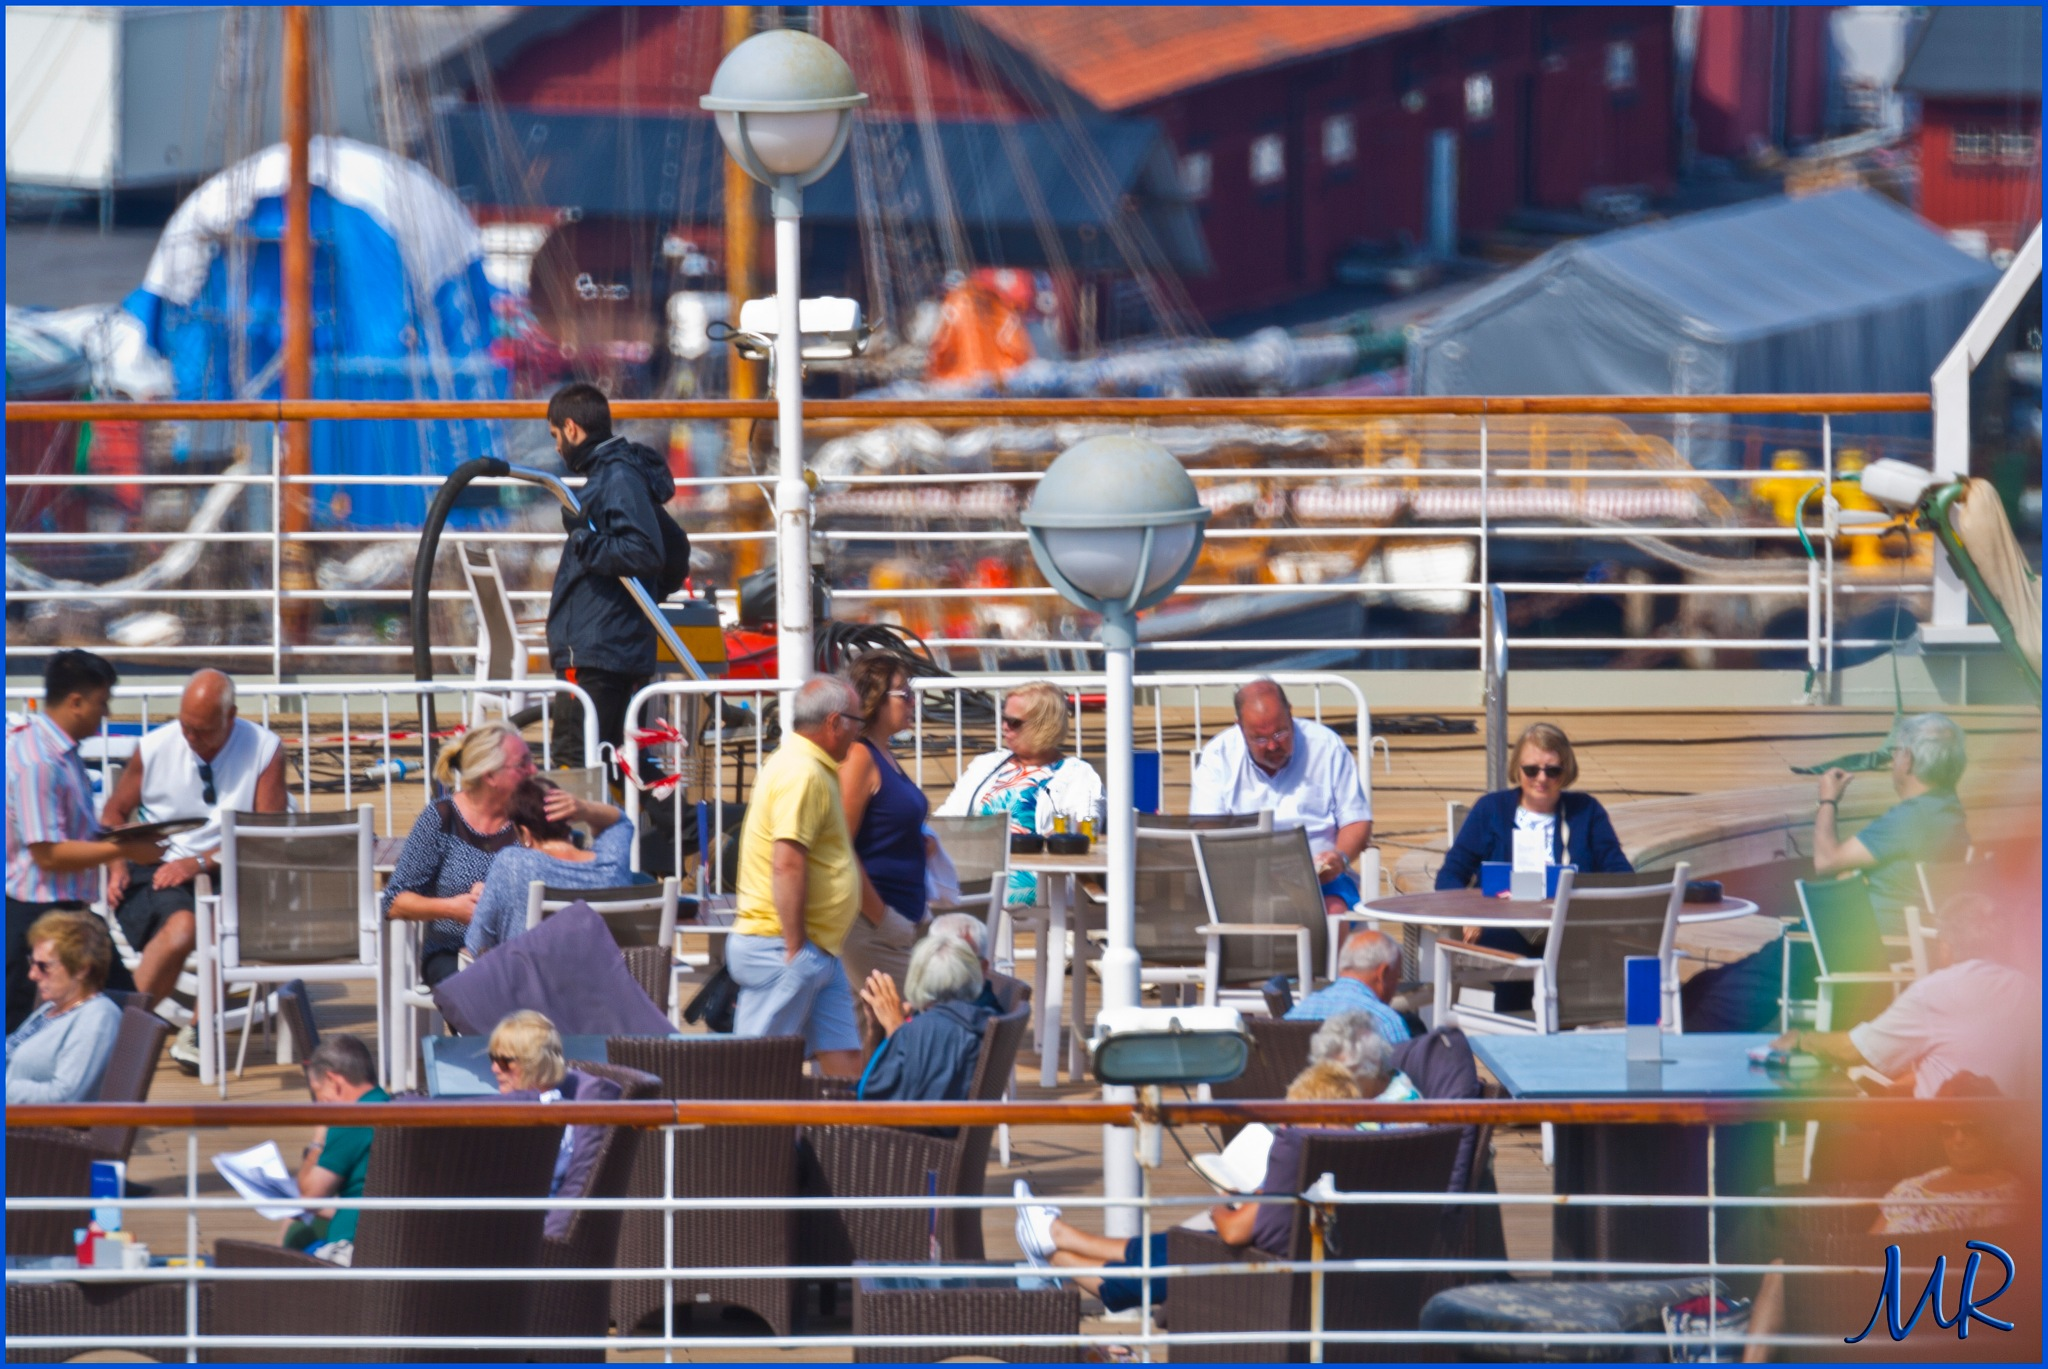 Aboard the M/S Arcadia waiting for departure in 1 hour, leaving for Riga by Mikael Rennerhorn